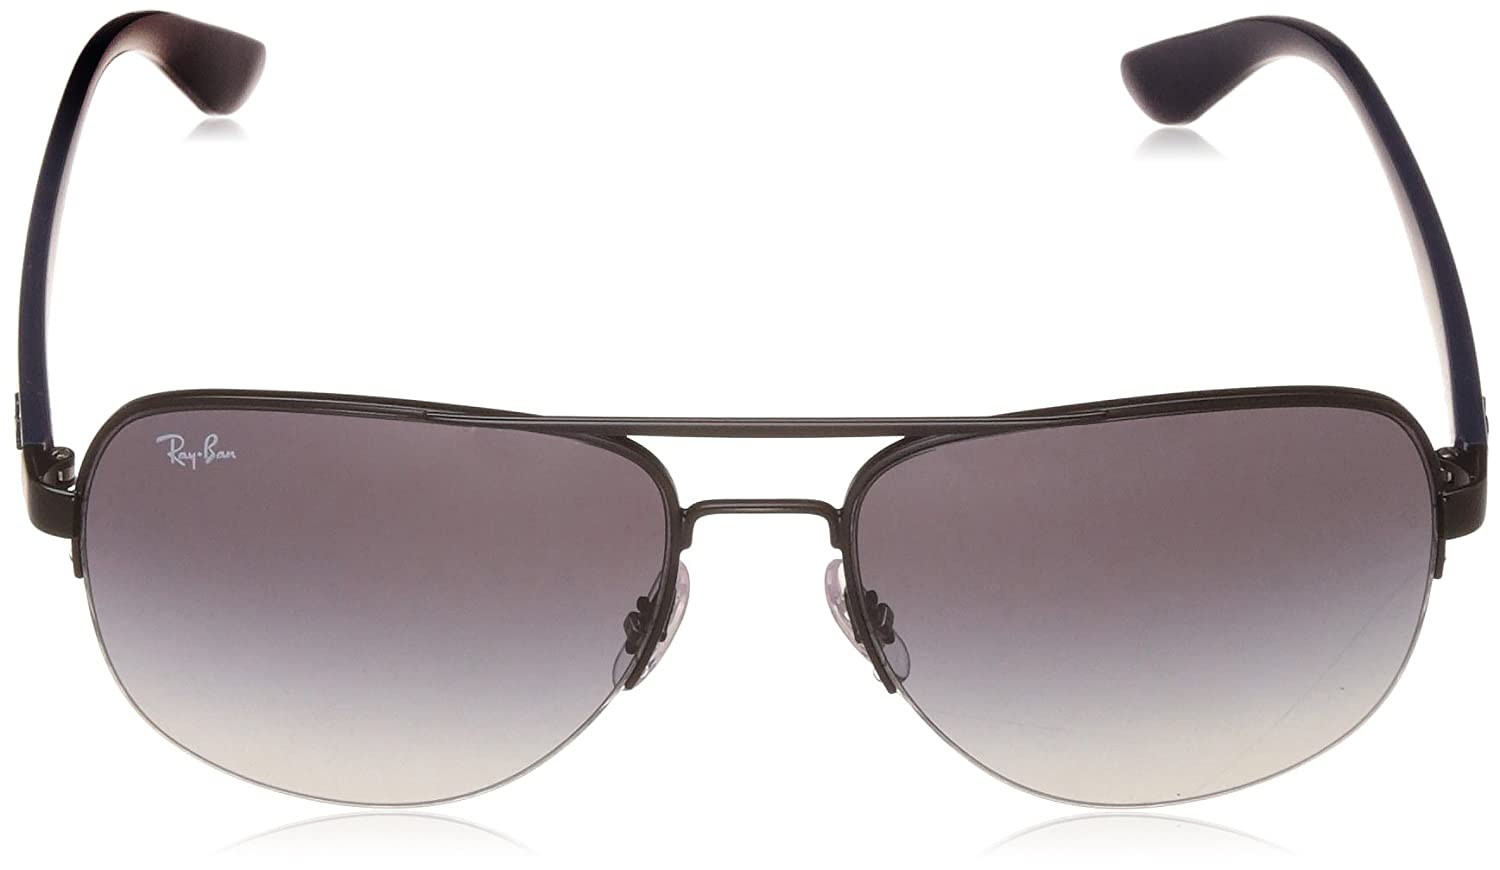 Amazon.com: Ray-Ban anteojos de sol rb3552i – 006/8G: Clothing